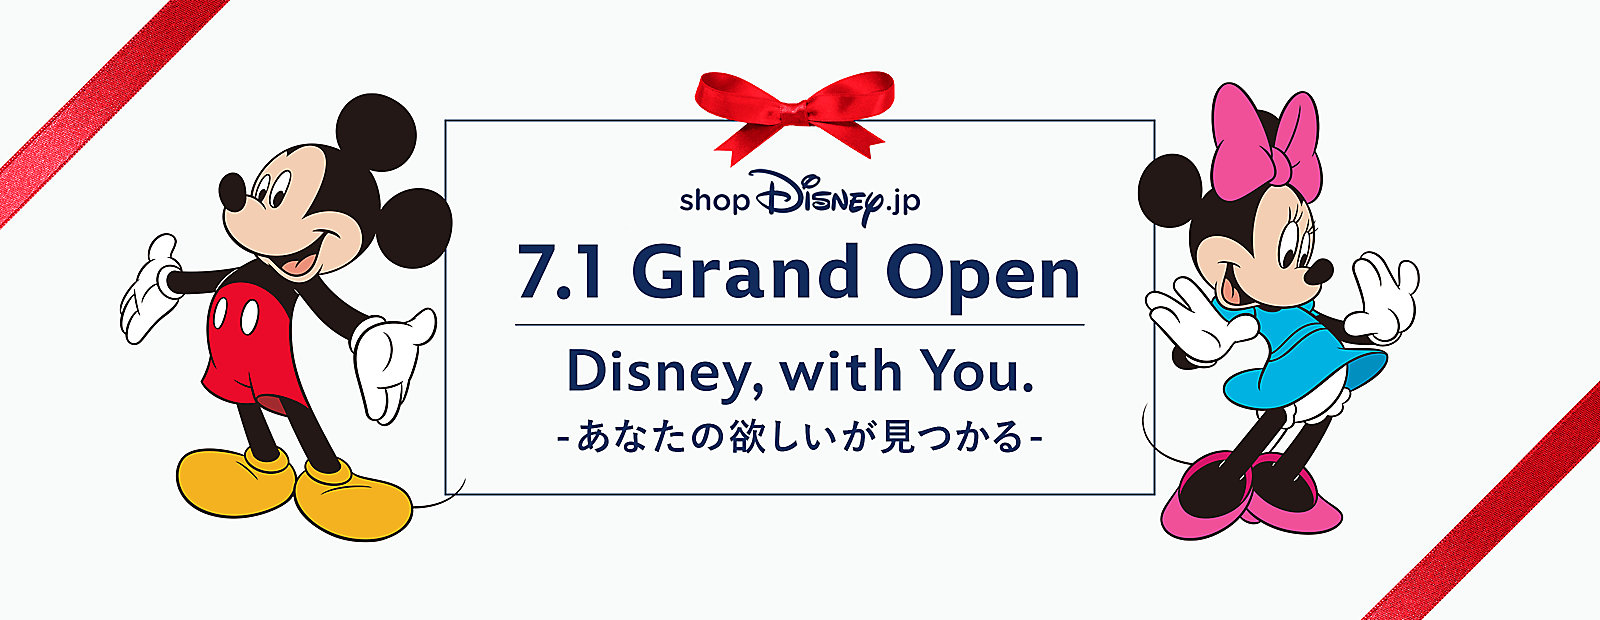 shop Disney.jp 7.1 Grand Open Disney,with you. -あなたの欲しいが見つかる-